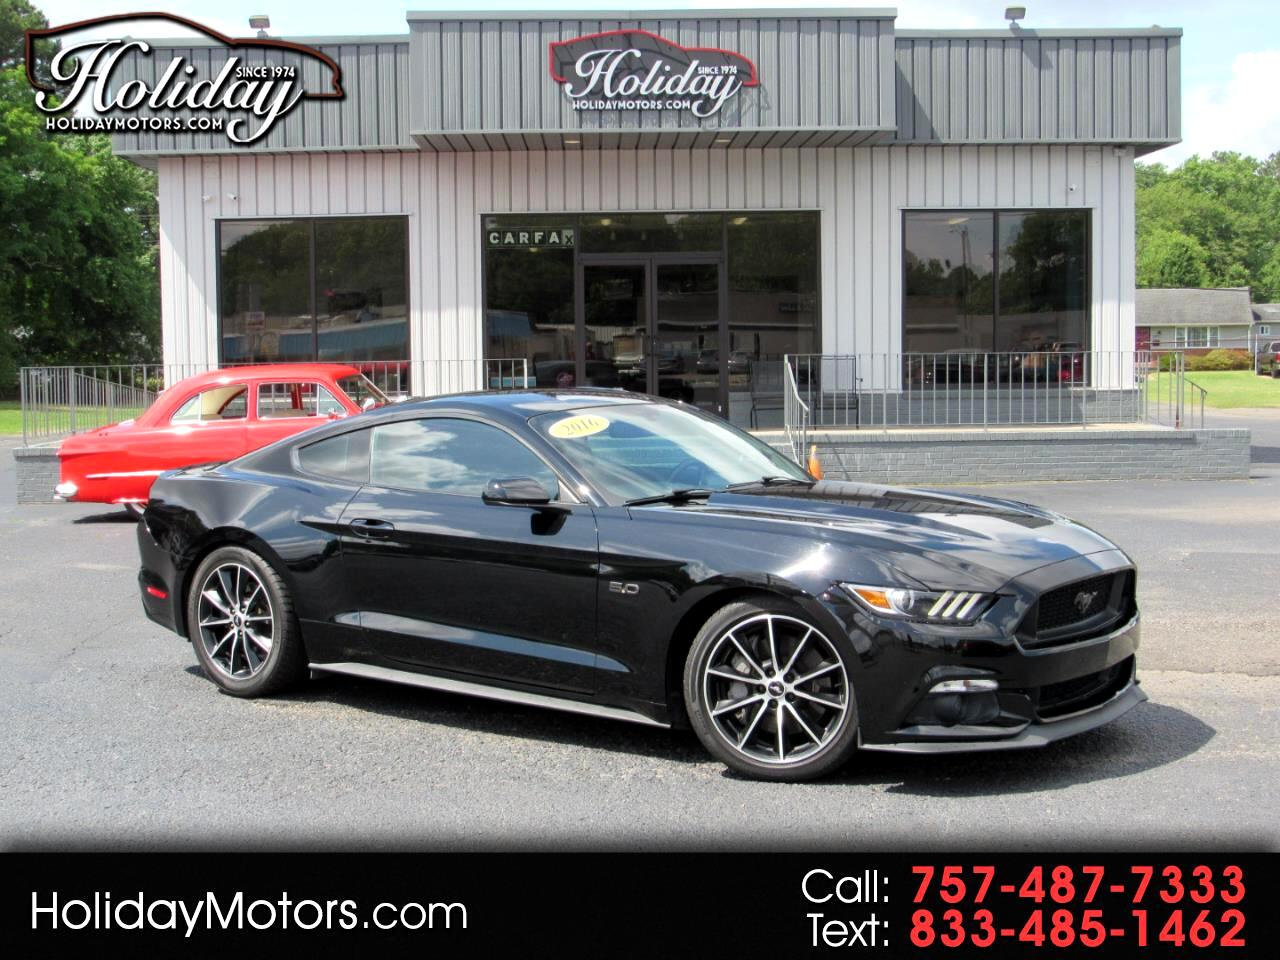 Ford Mustang 2dr Fastback GT 2016